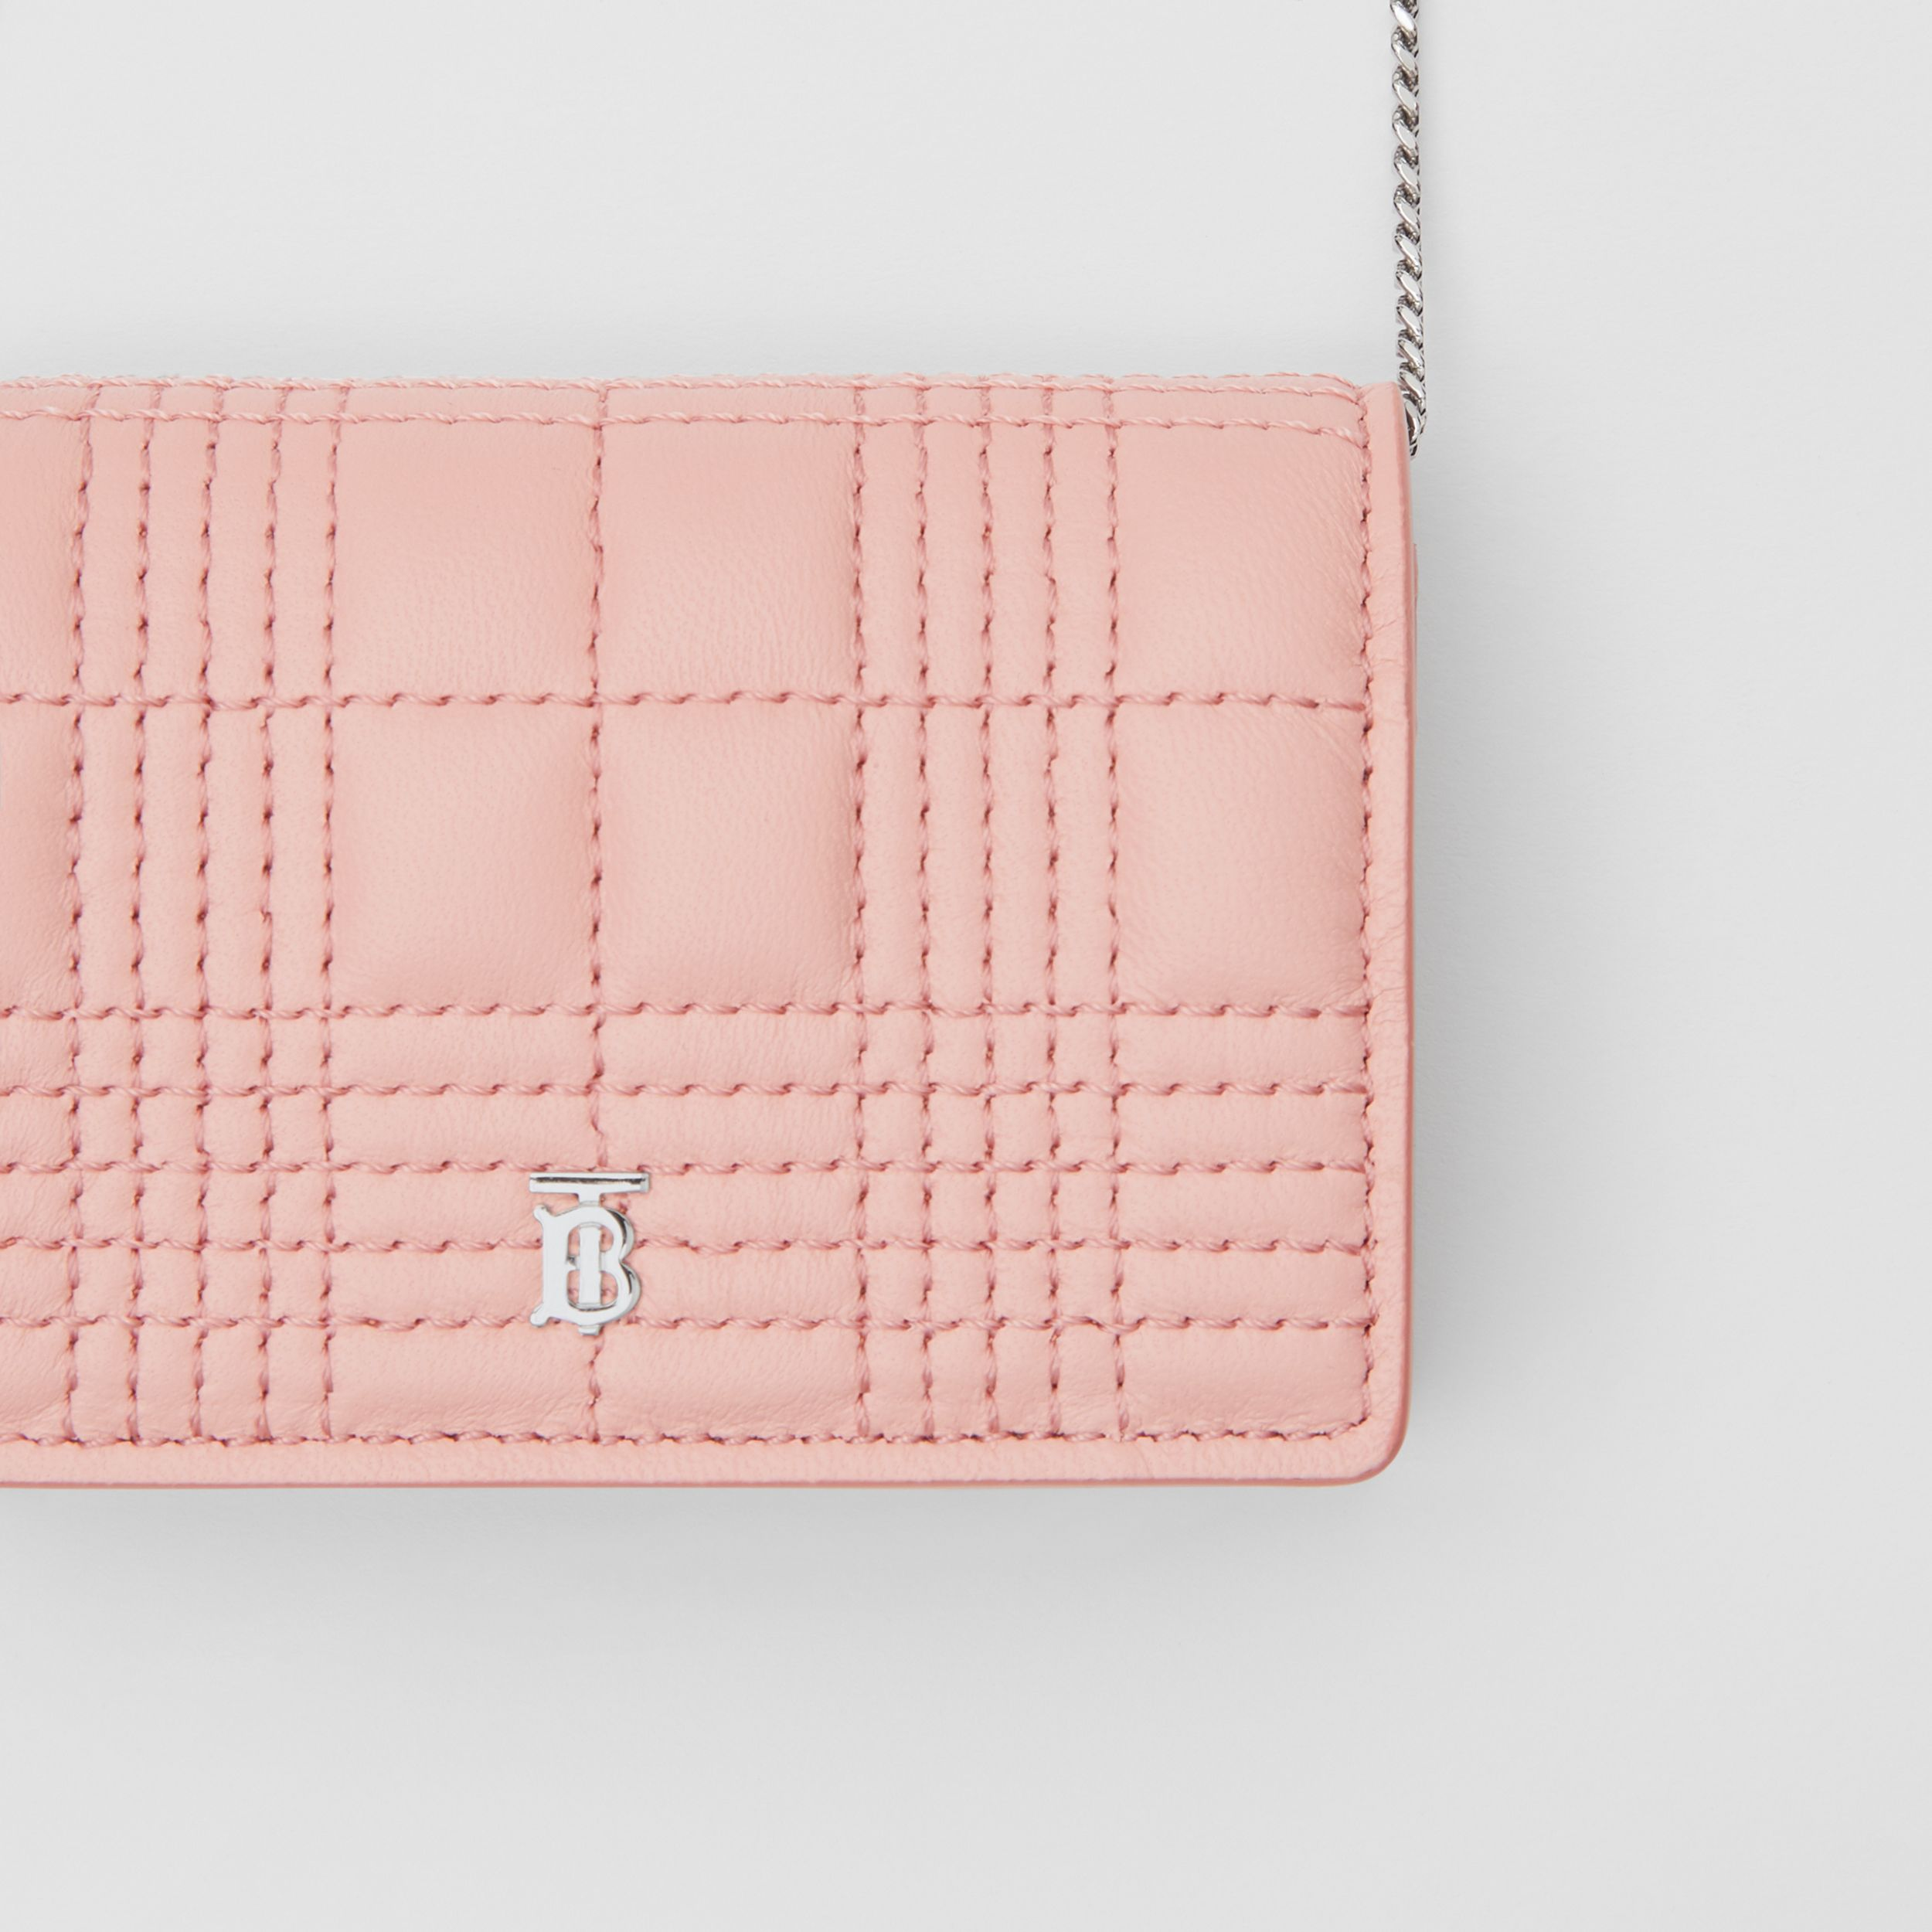 Quilted Lambskin Card Case with Detachable Strap in Blush Pink - Women | Burberry - 2